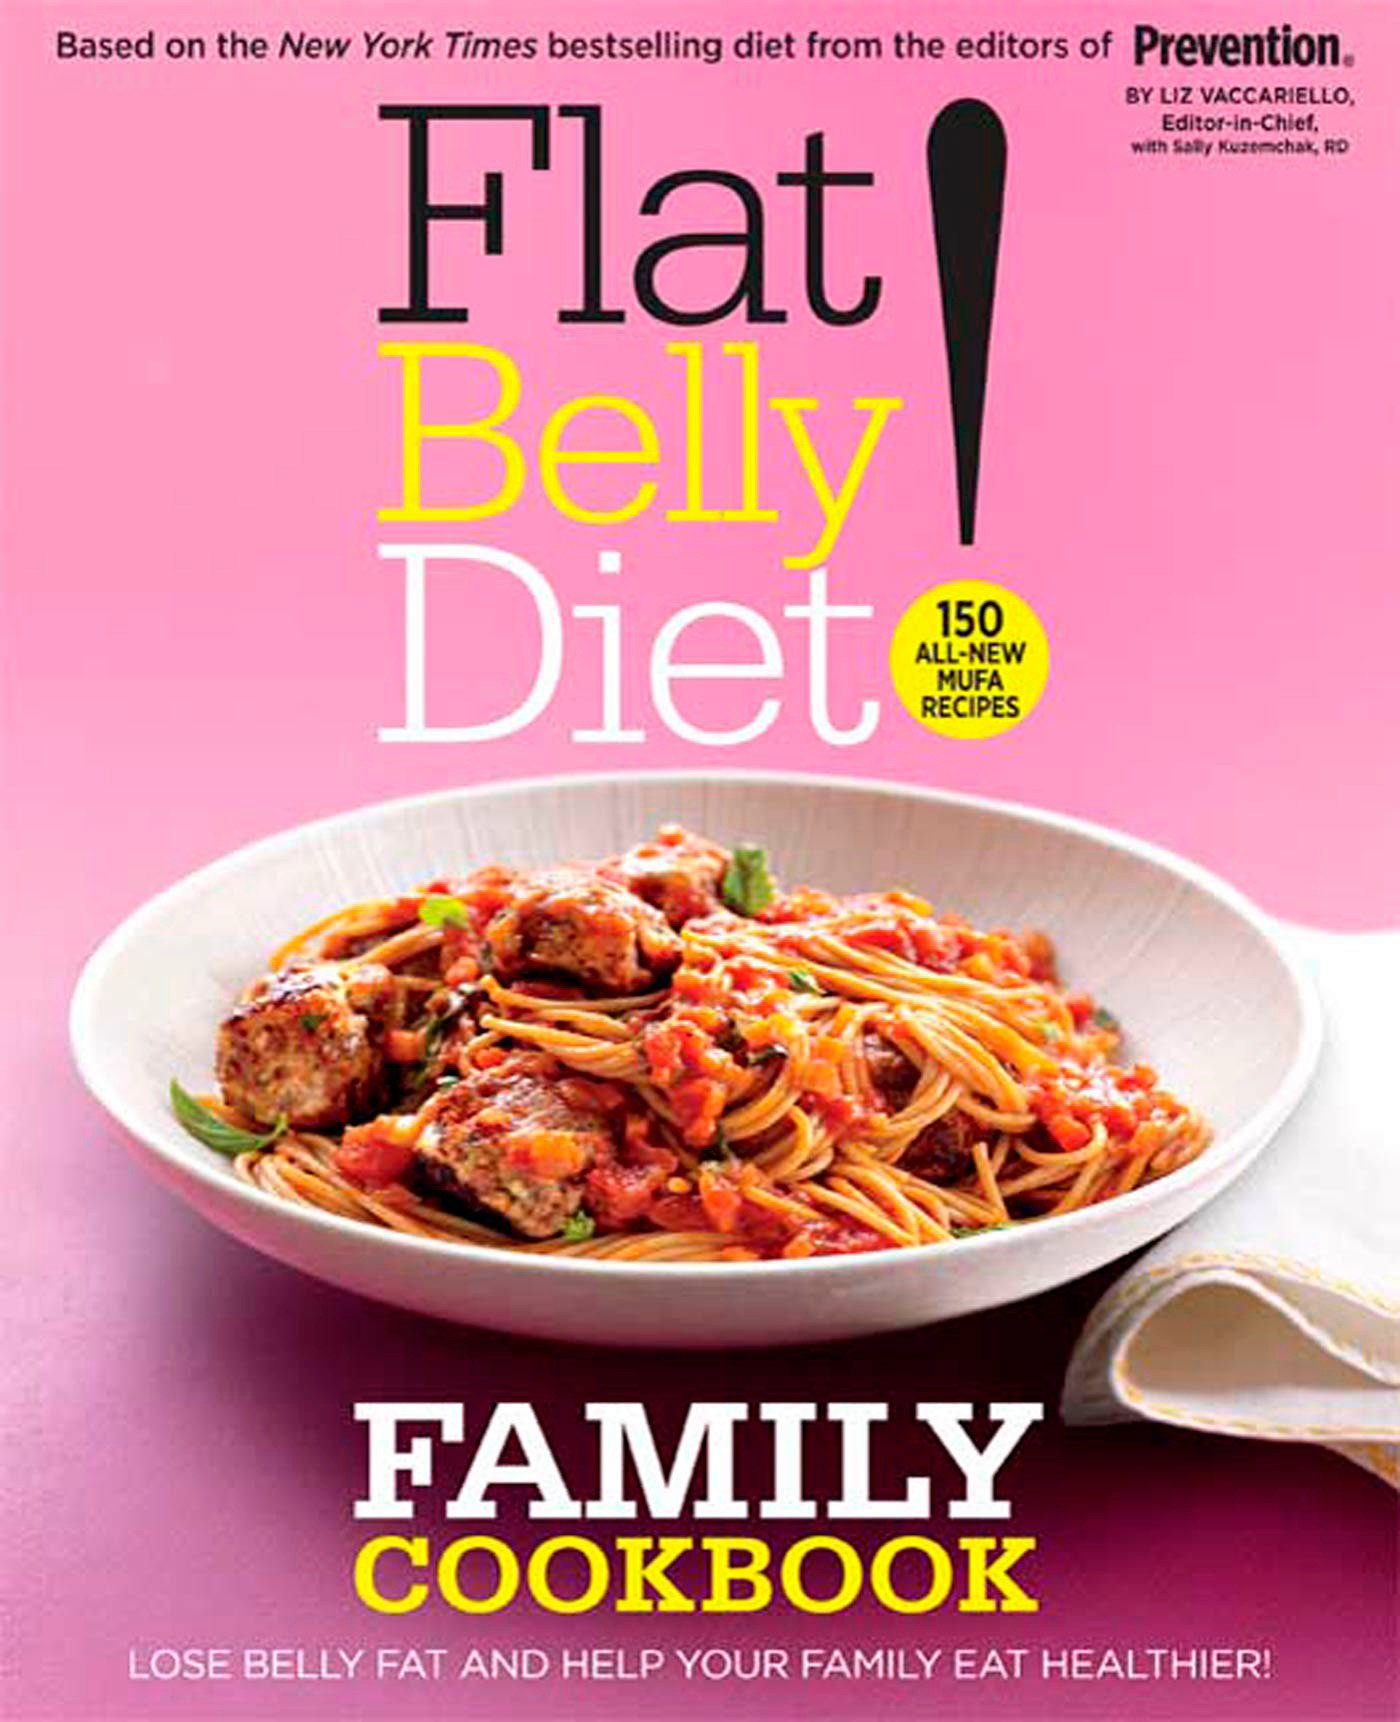 Family-Friendly Flat Belly Diet Recipes